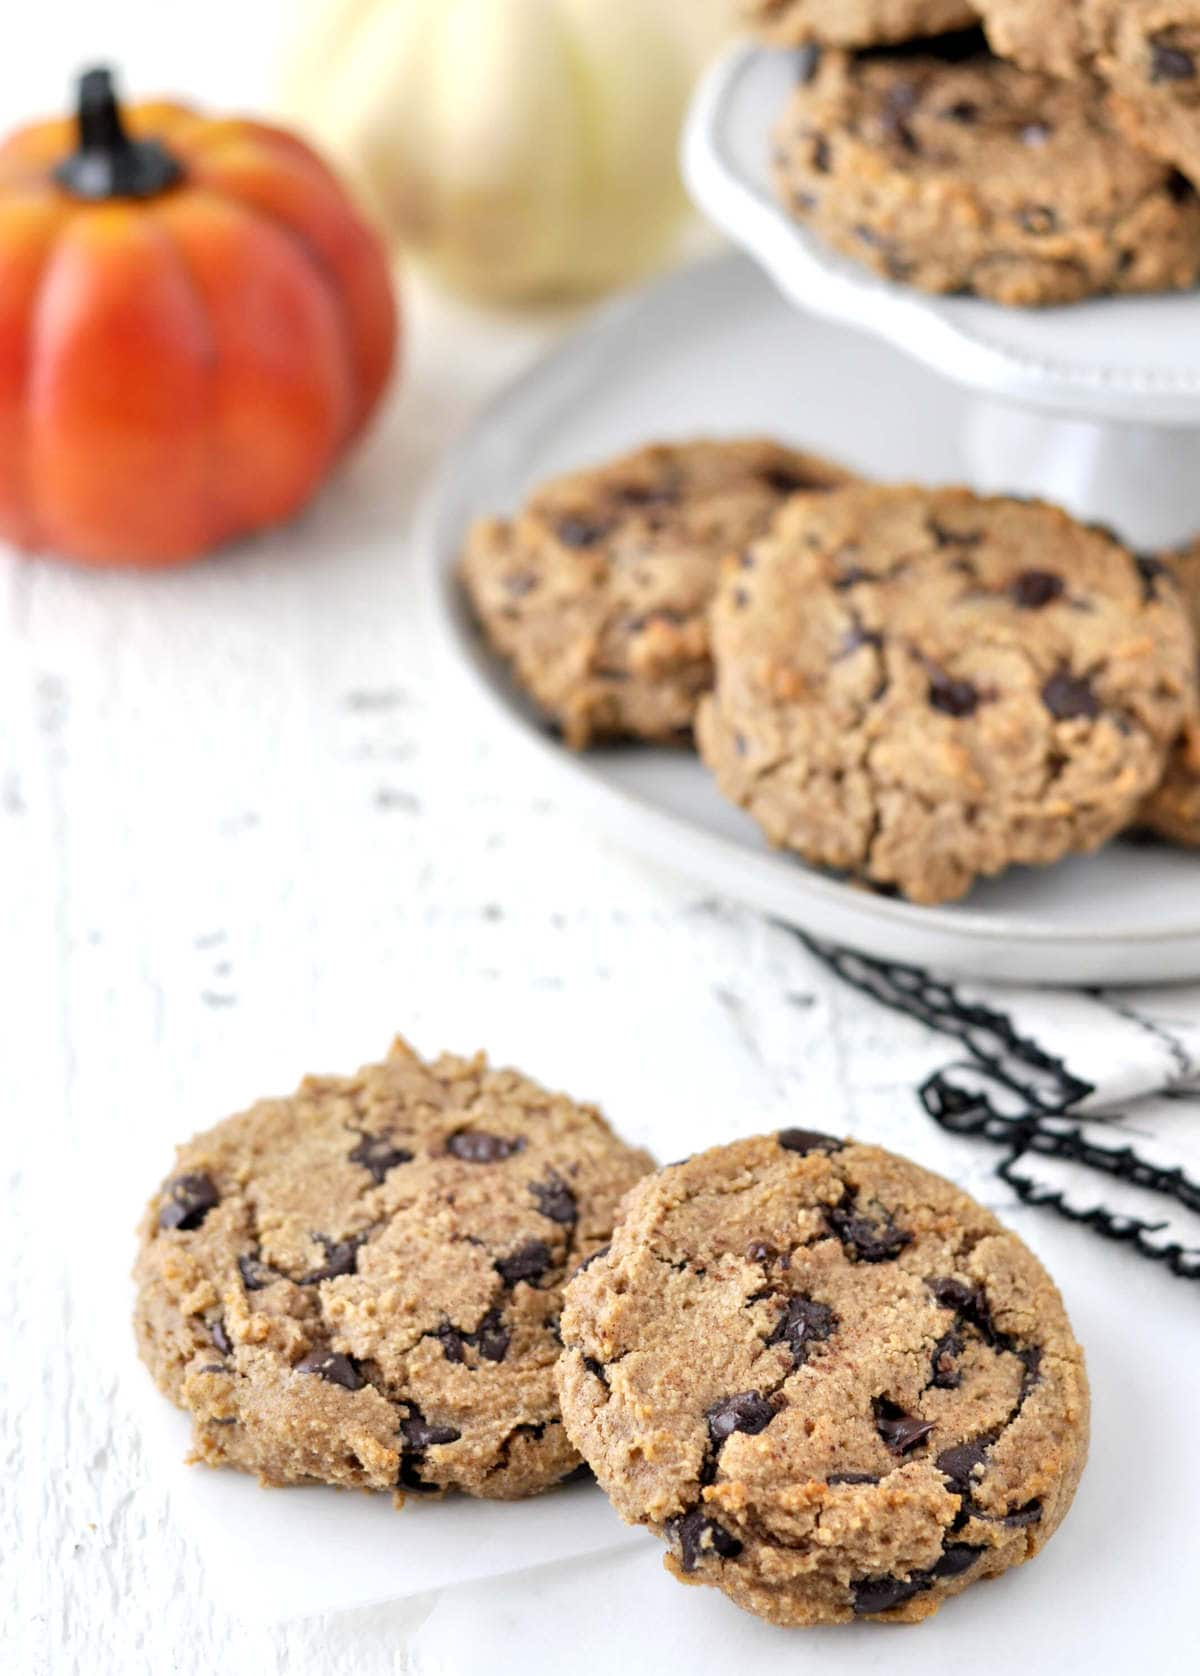 Keto Pumpkin Spice Chocolate Chip Cookies | Peace Love and Low Carb